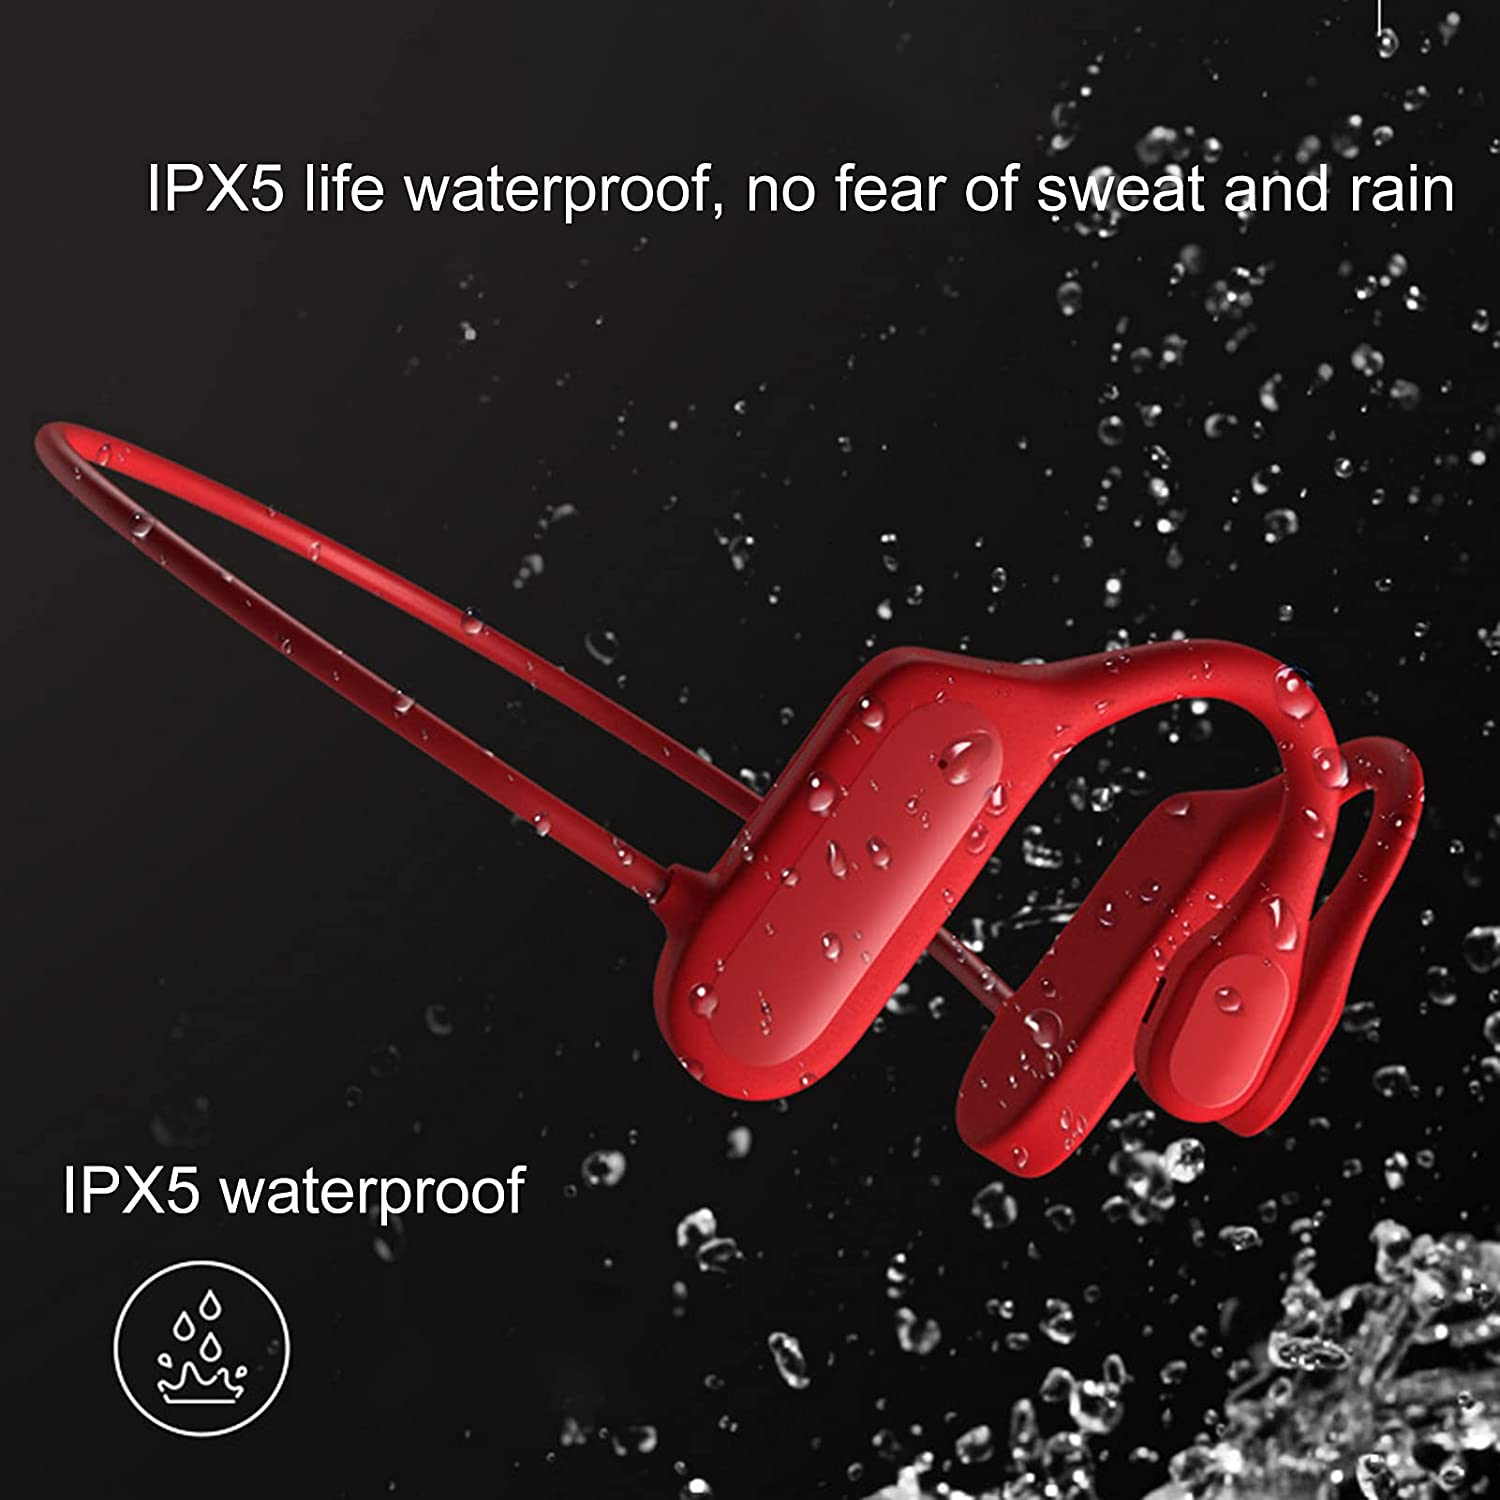 OCUhome Bone Conduction Headphones, BL09 Bluetooth Earphone IPX5 Life Waterproof Long Standby Stereo Wireless Hanging-Ear Bone Conduction Headset for Sports Red